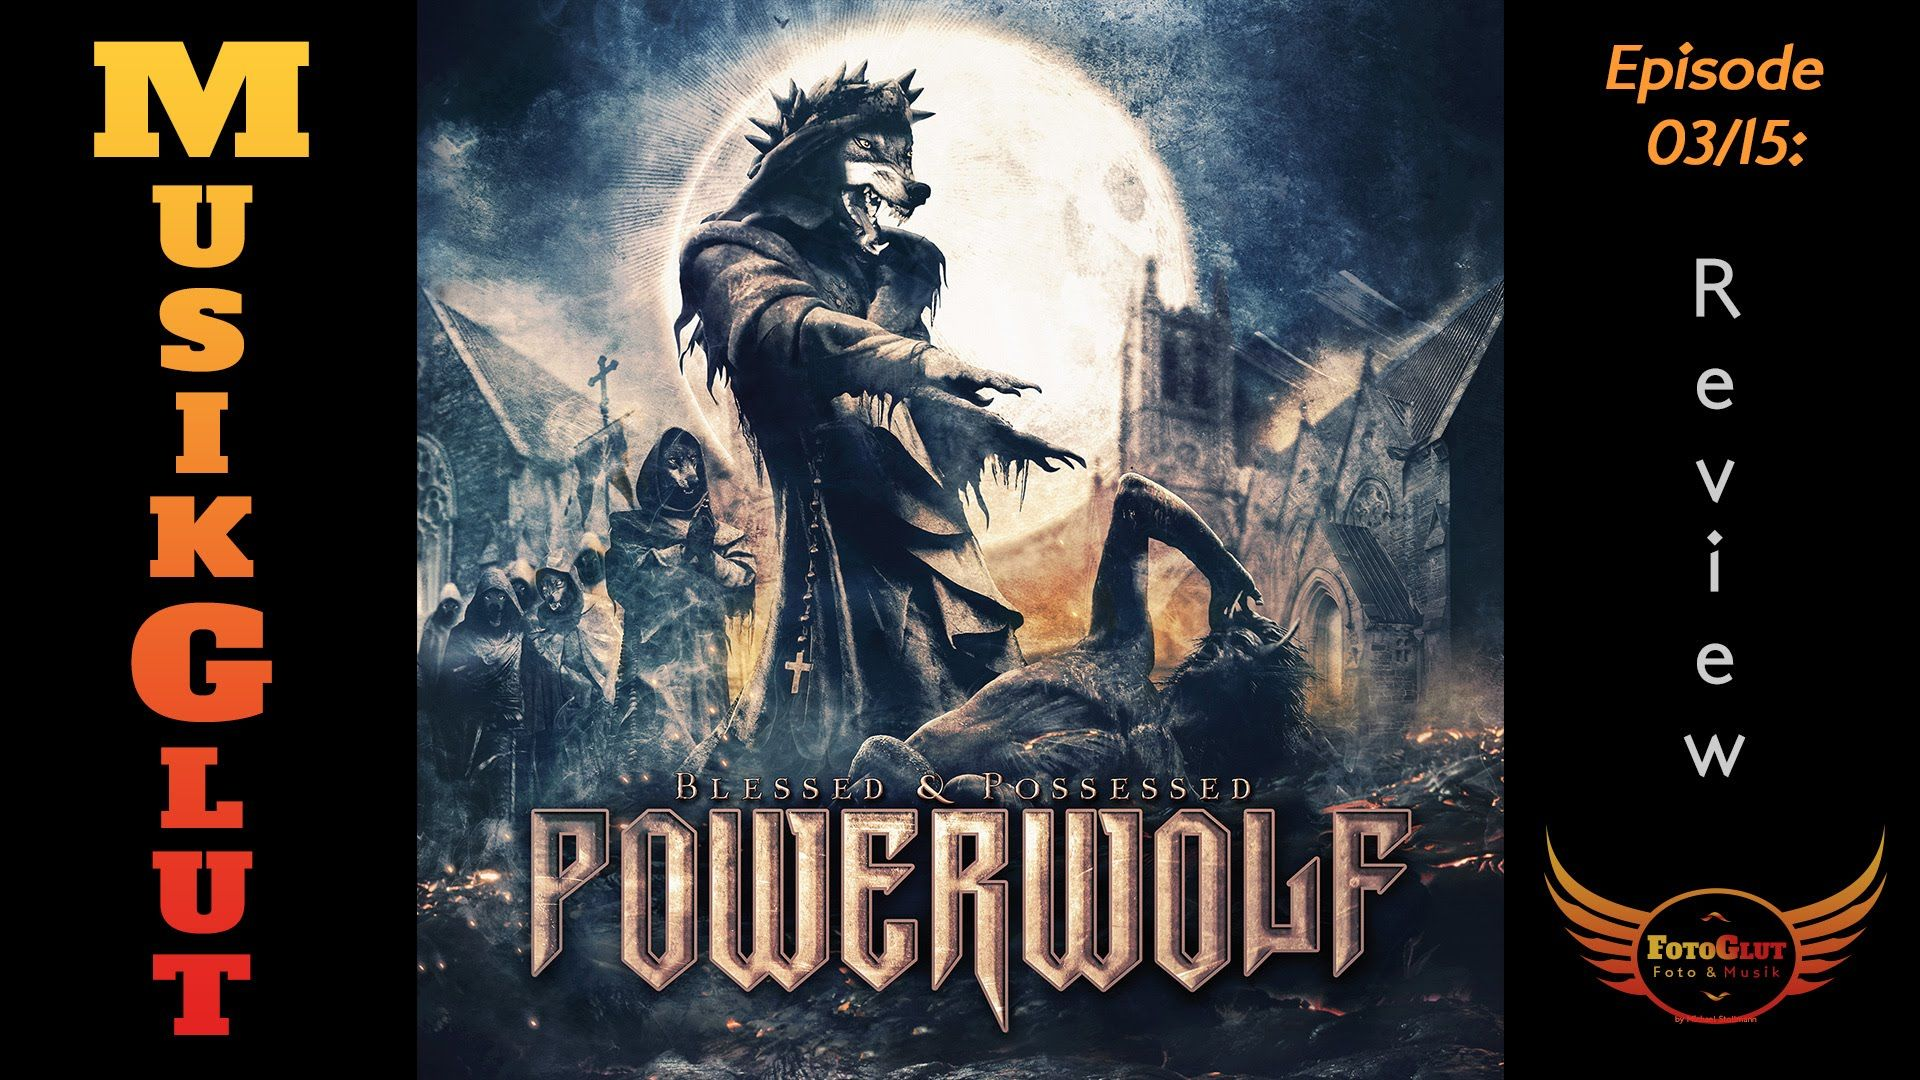 Musikglut 03 - Powerwolf - Blessed & Possessed - Review